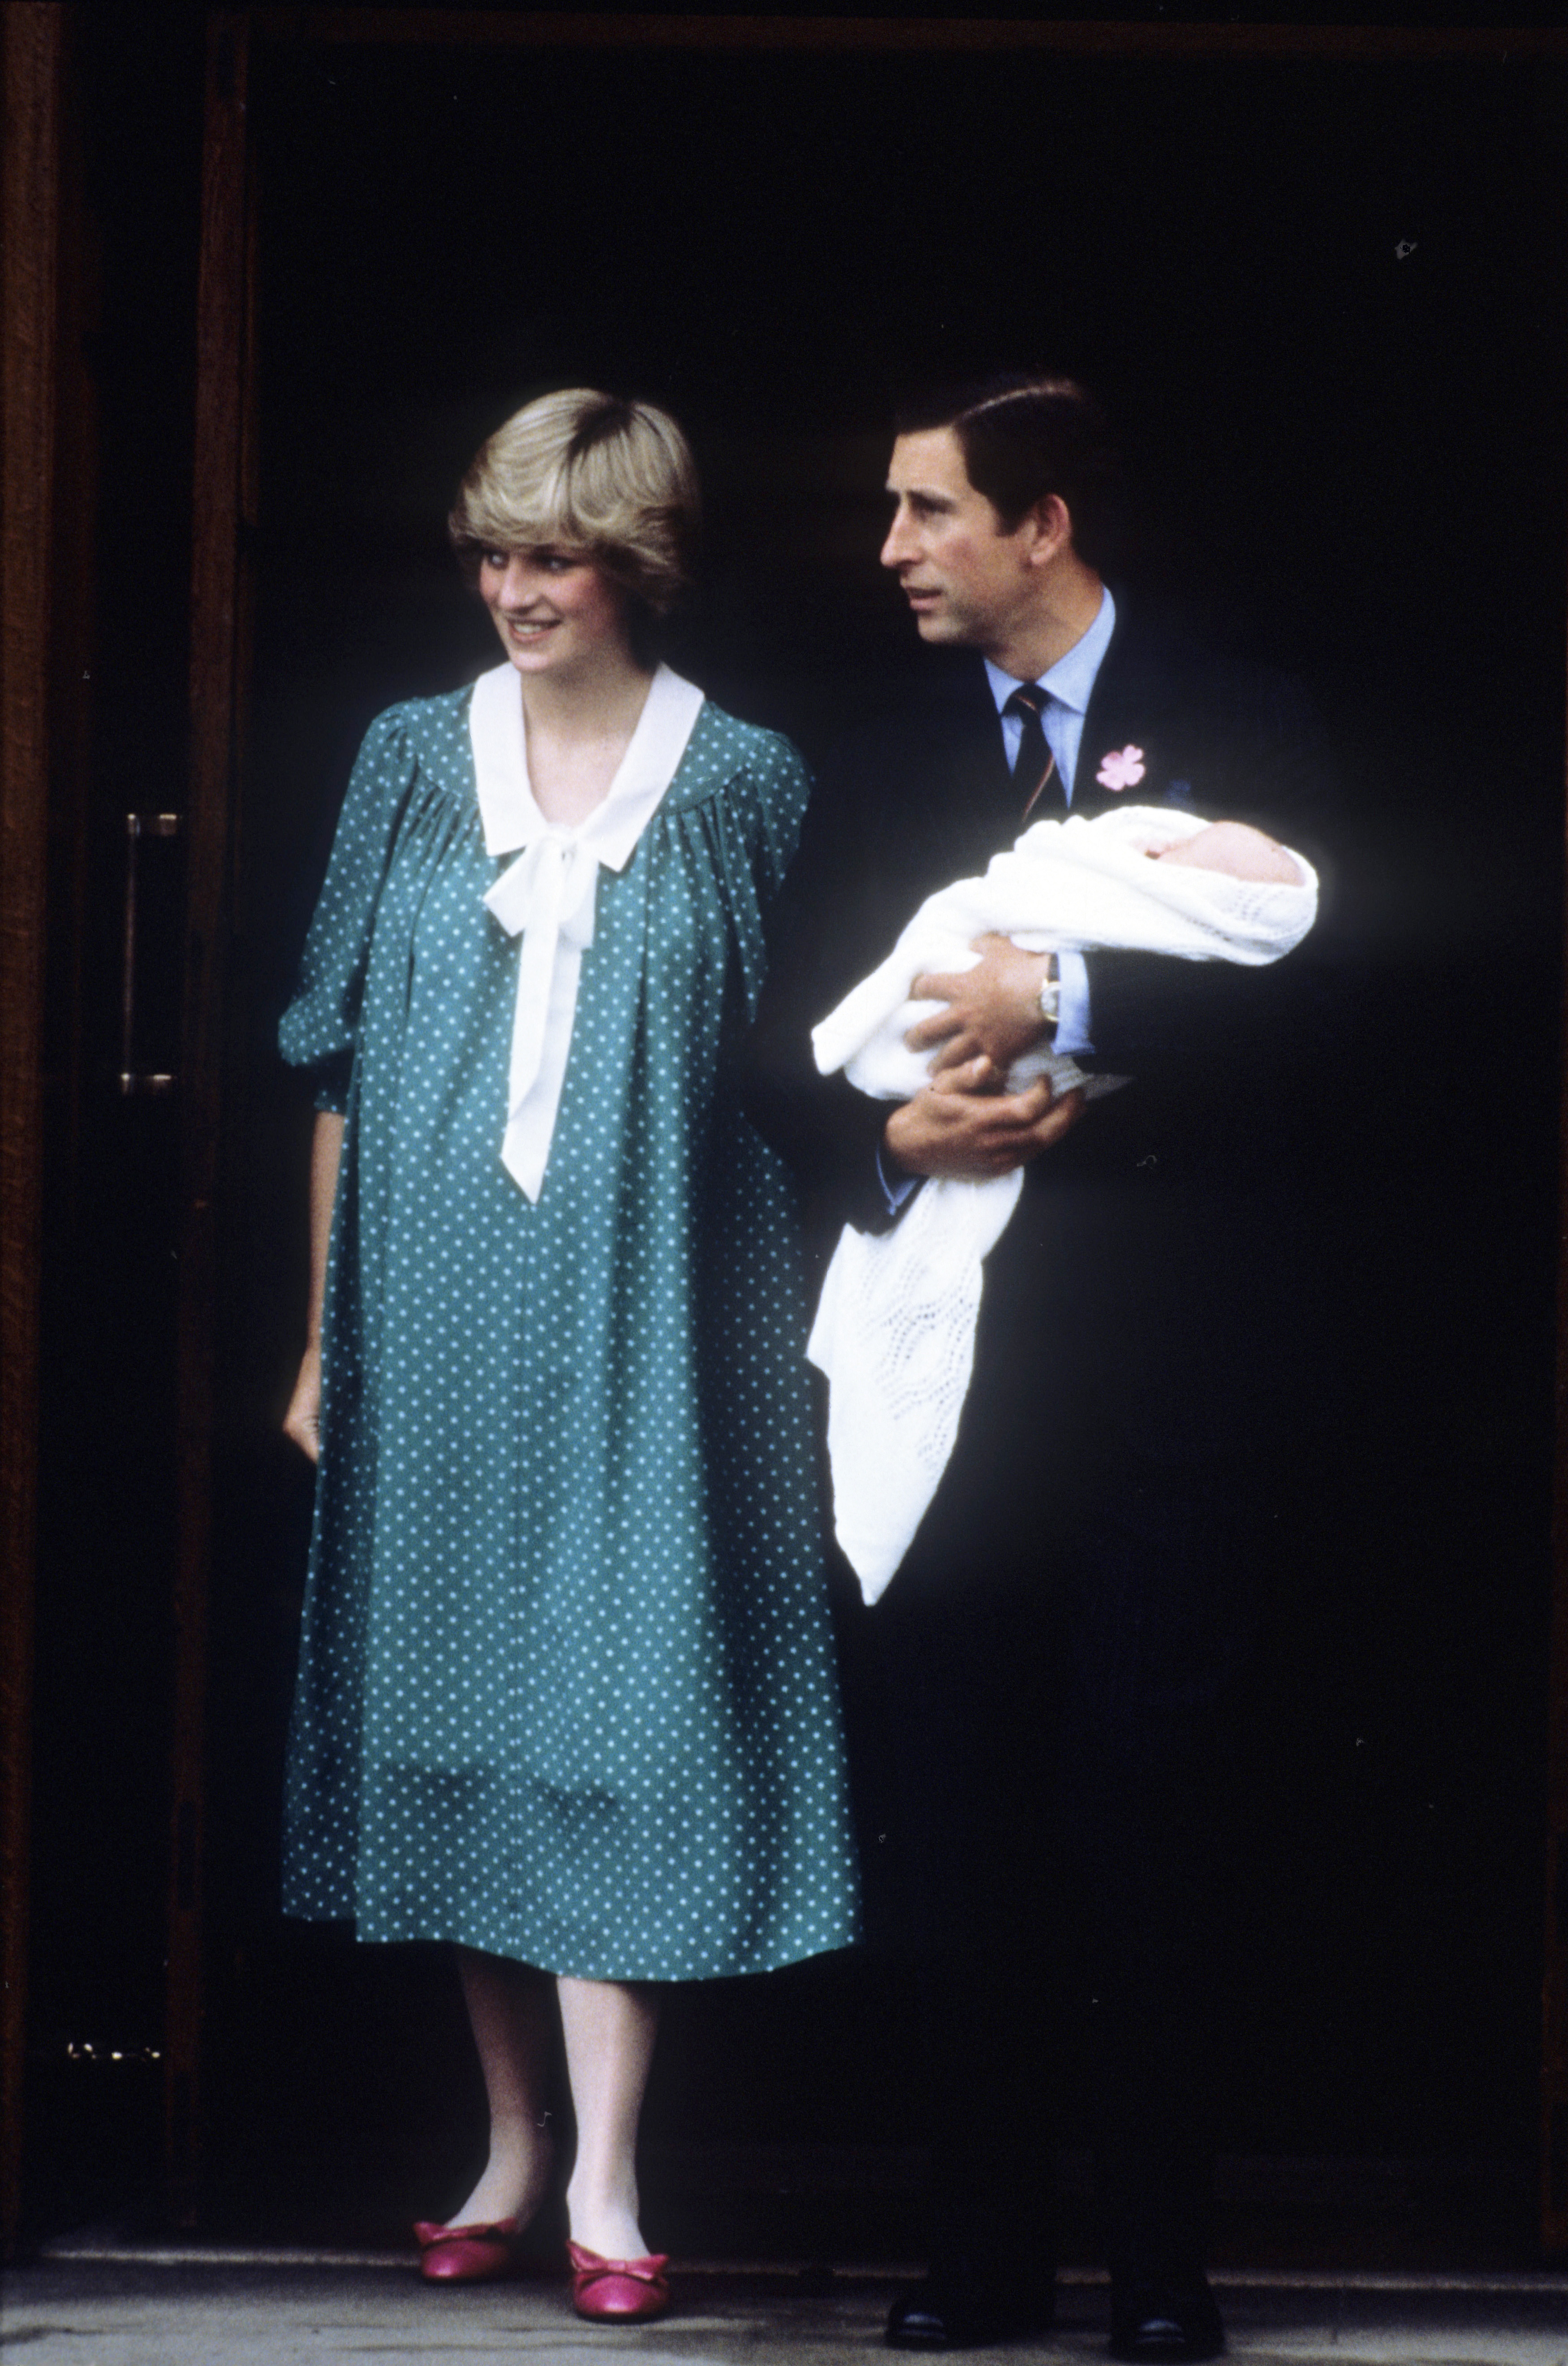 After giving birth to Prince William on June 22, 1982, Diana exited the hospital wearing a playful polka dotted shift dress.